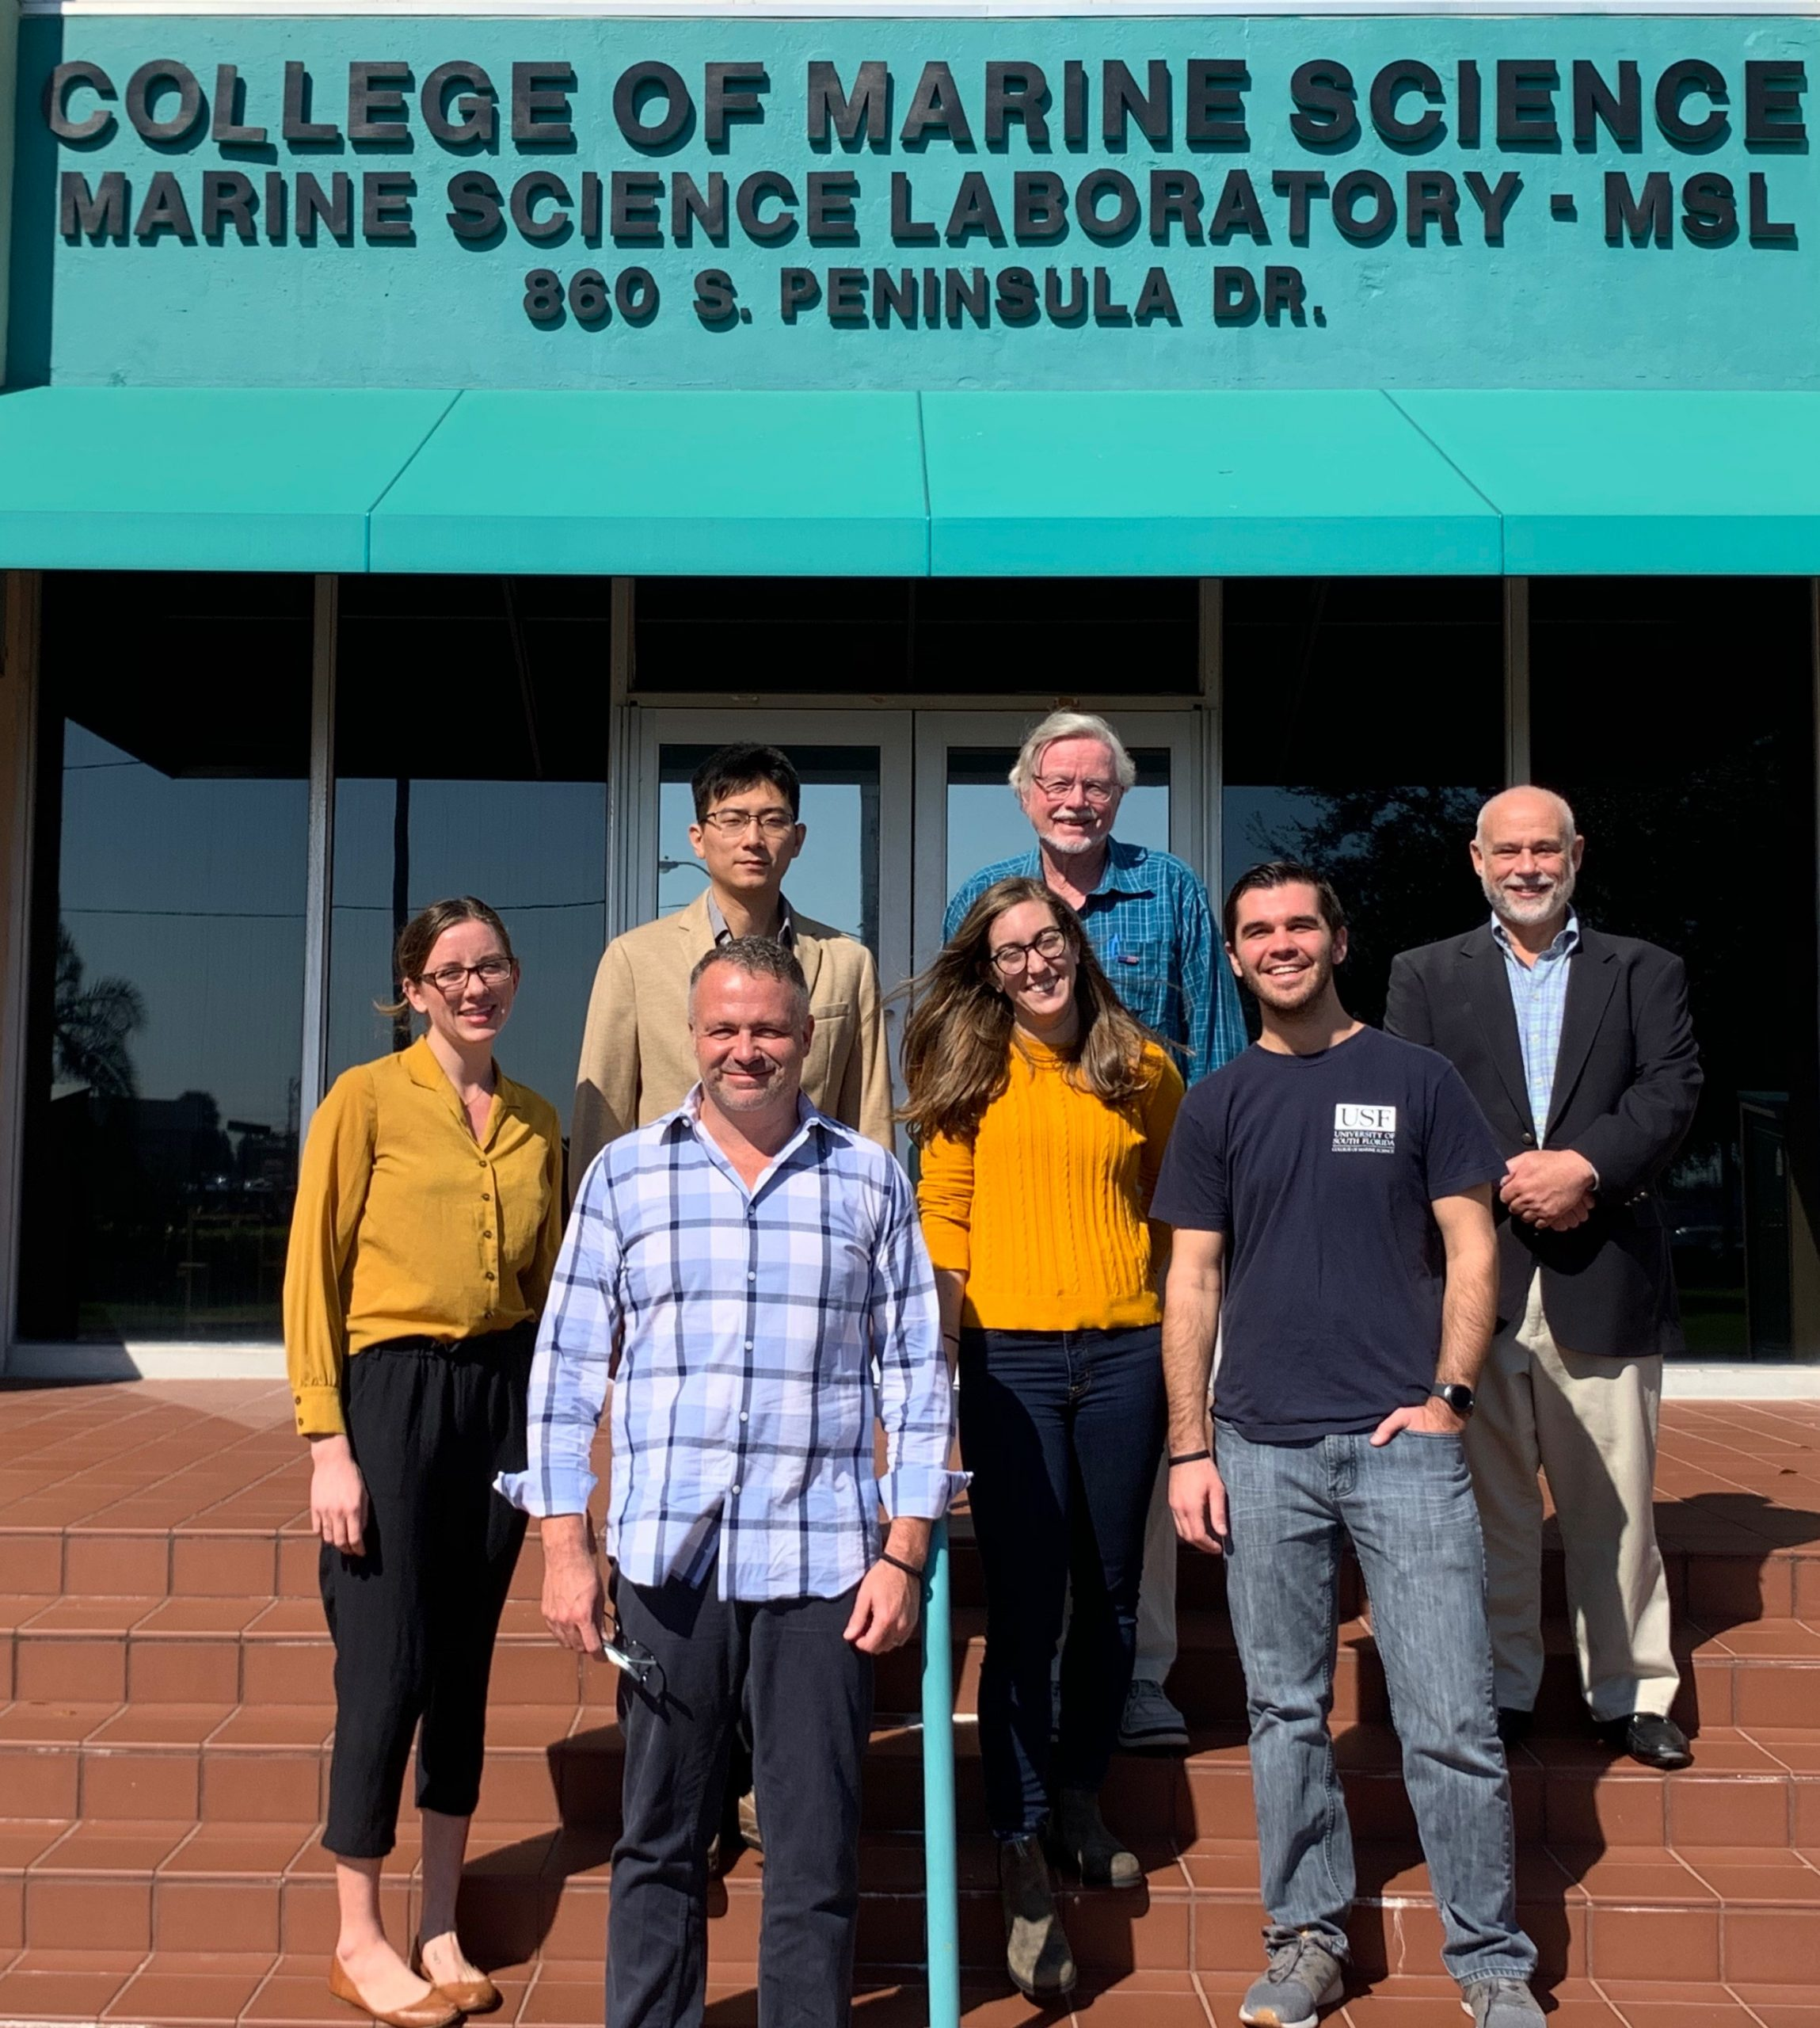 From left to right, back row, Bea Combs, Jing Chen, Professor Al Hine, Mr. Jim Aresty. Front row: Mr. Jason Mathis, Ryan Venturelli and Jonathan Sharp. Not pictured: Ellie Hudson-Heck.